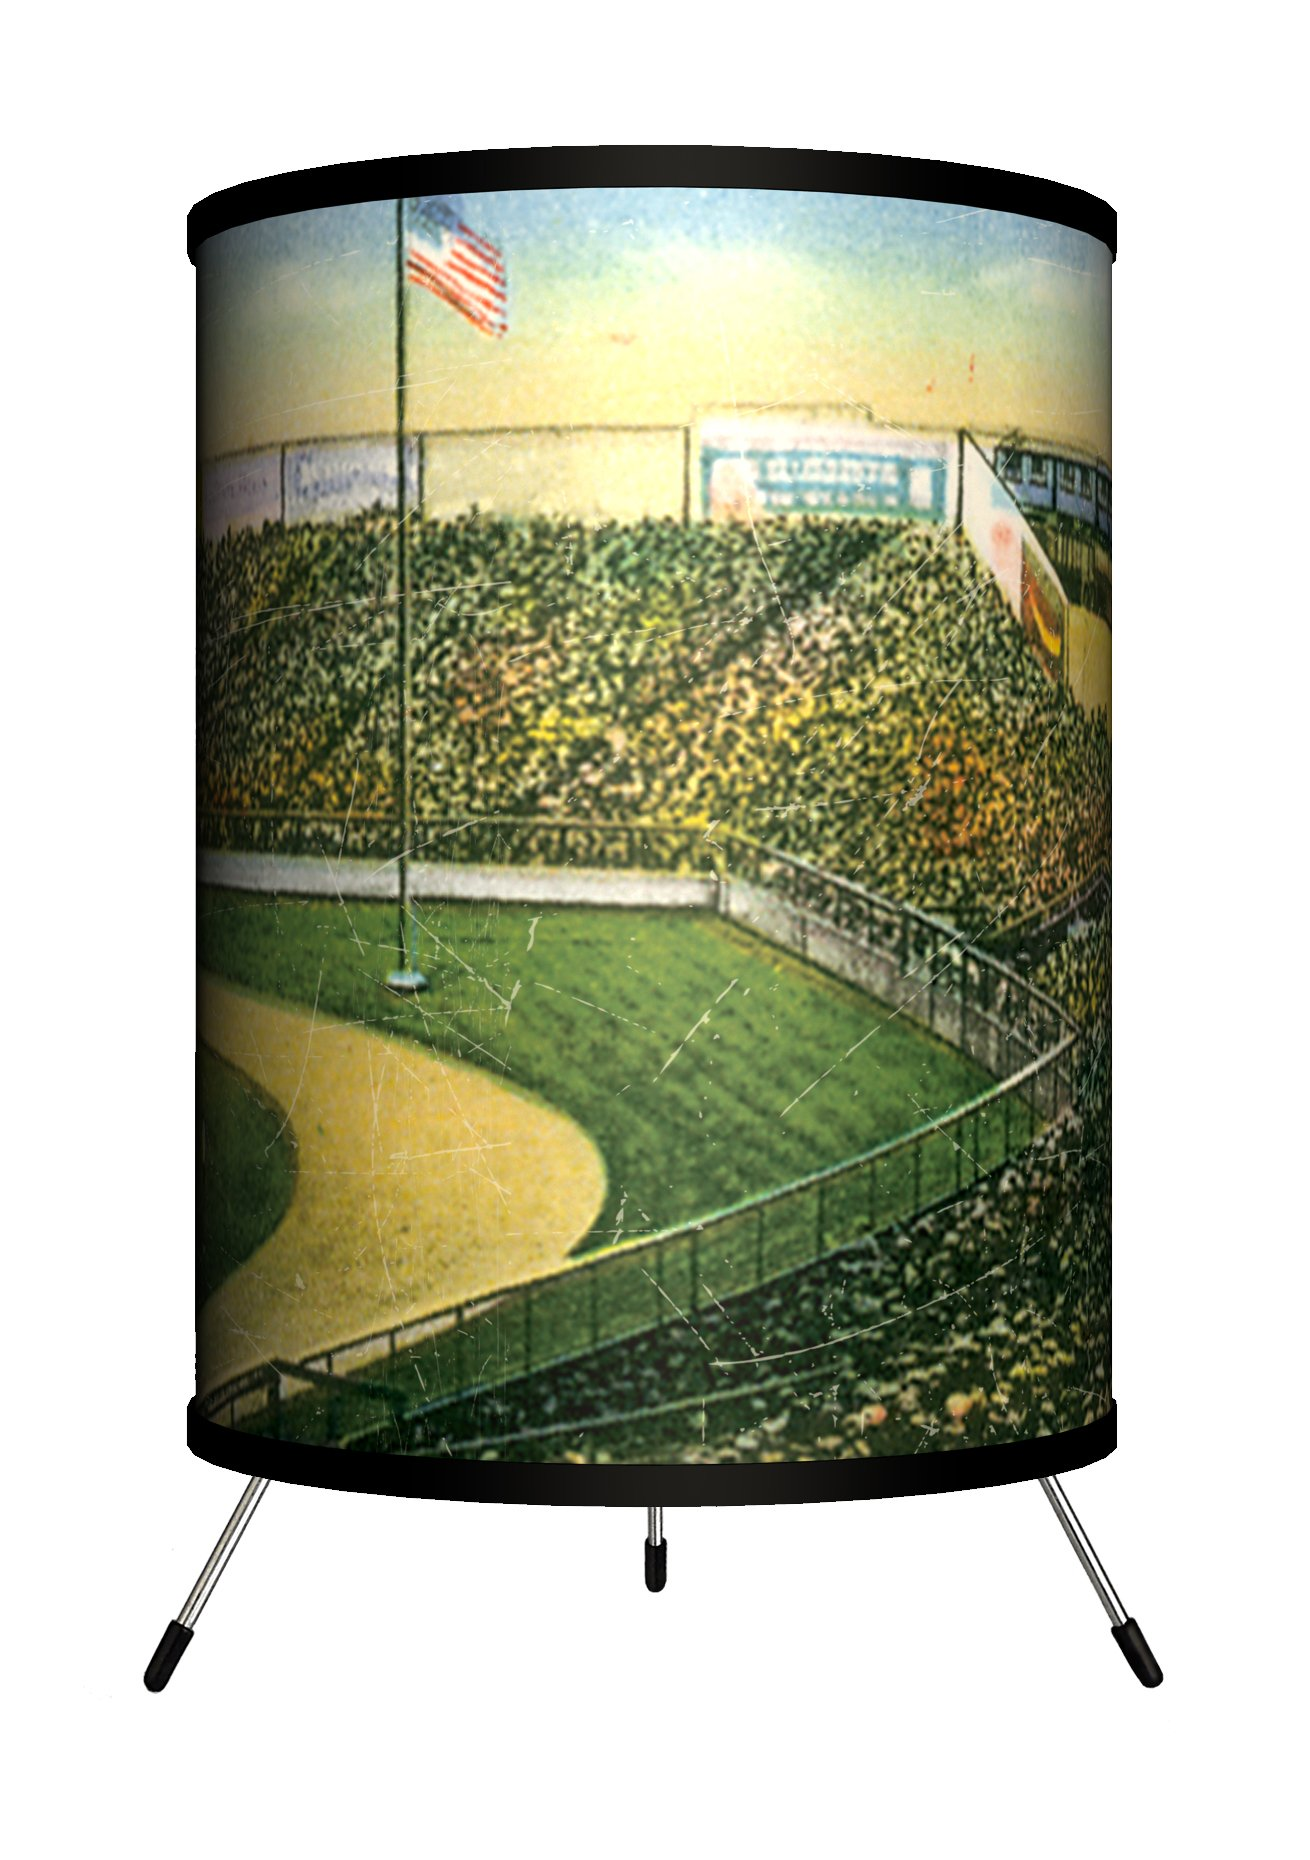 Lamp-In-A-Box TRI-TRV-YANKE Travel - Yankee Stadium Postcard Tripod Lamp, 14'' x 8'' x 8''